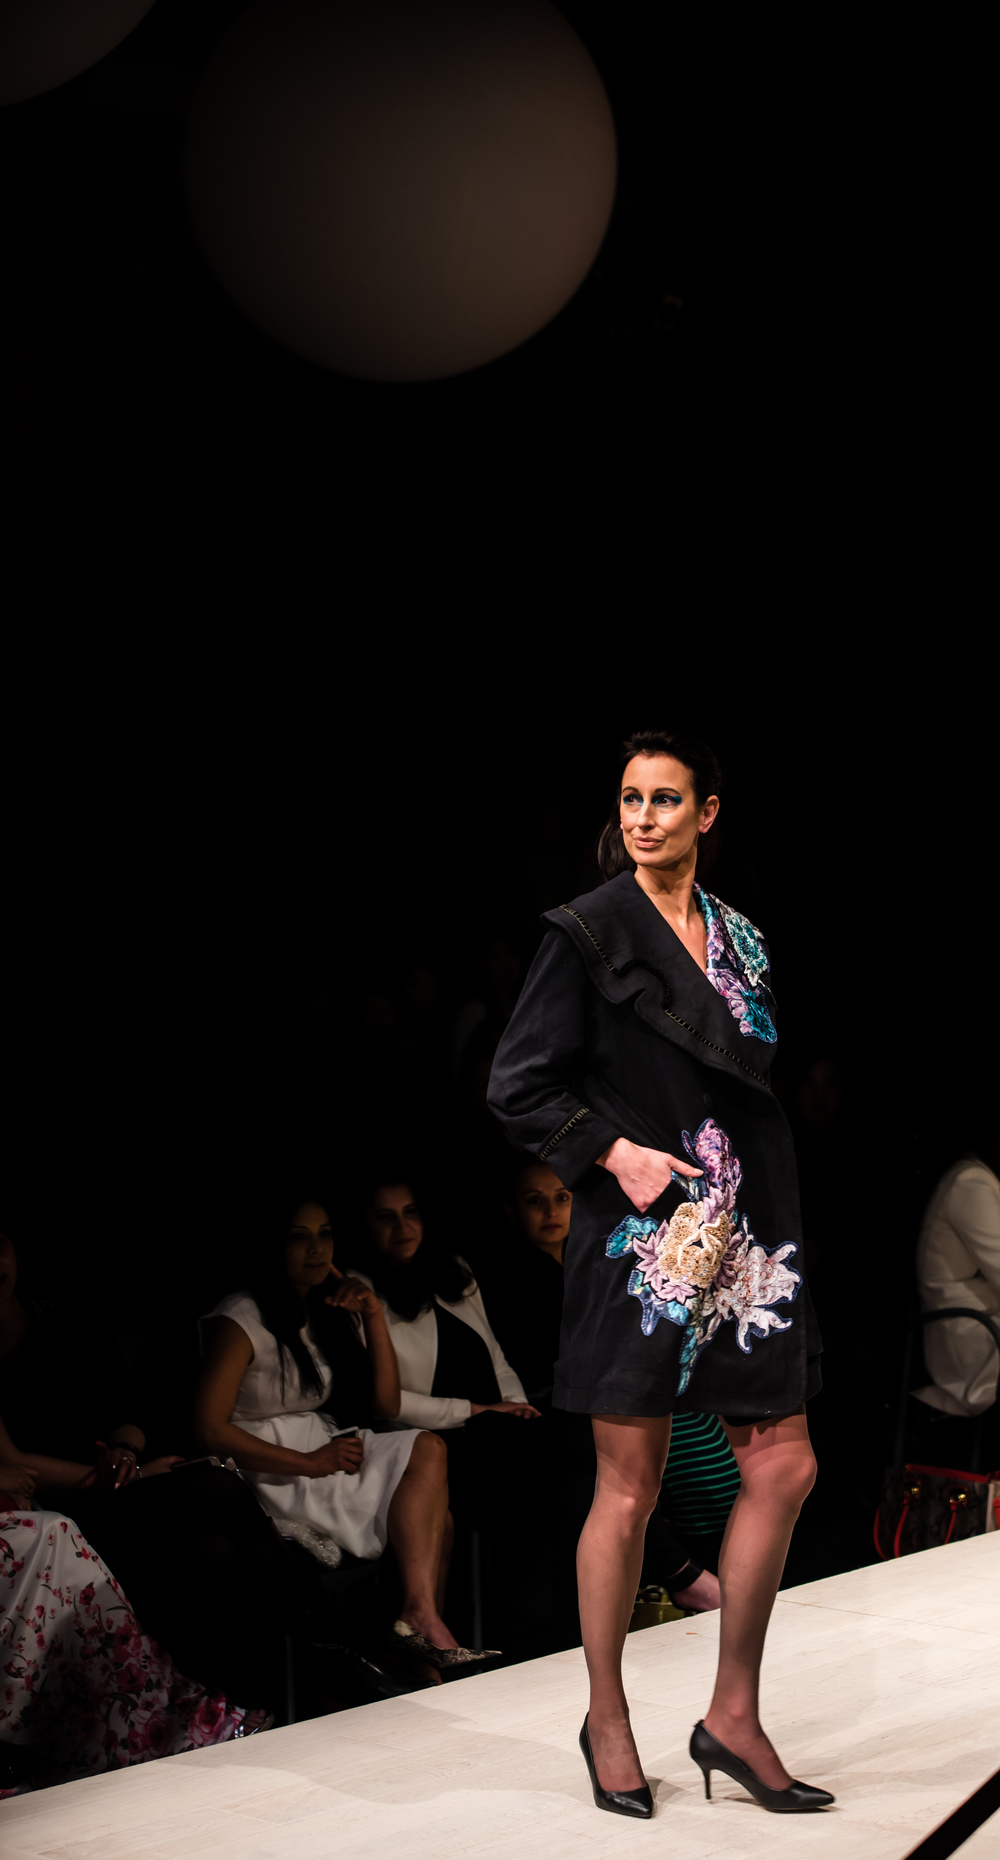 Sher Khan Niazi-WCFW-Asian-3605.jpg